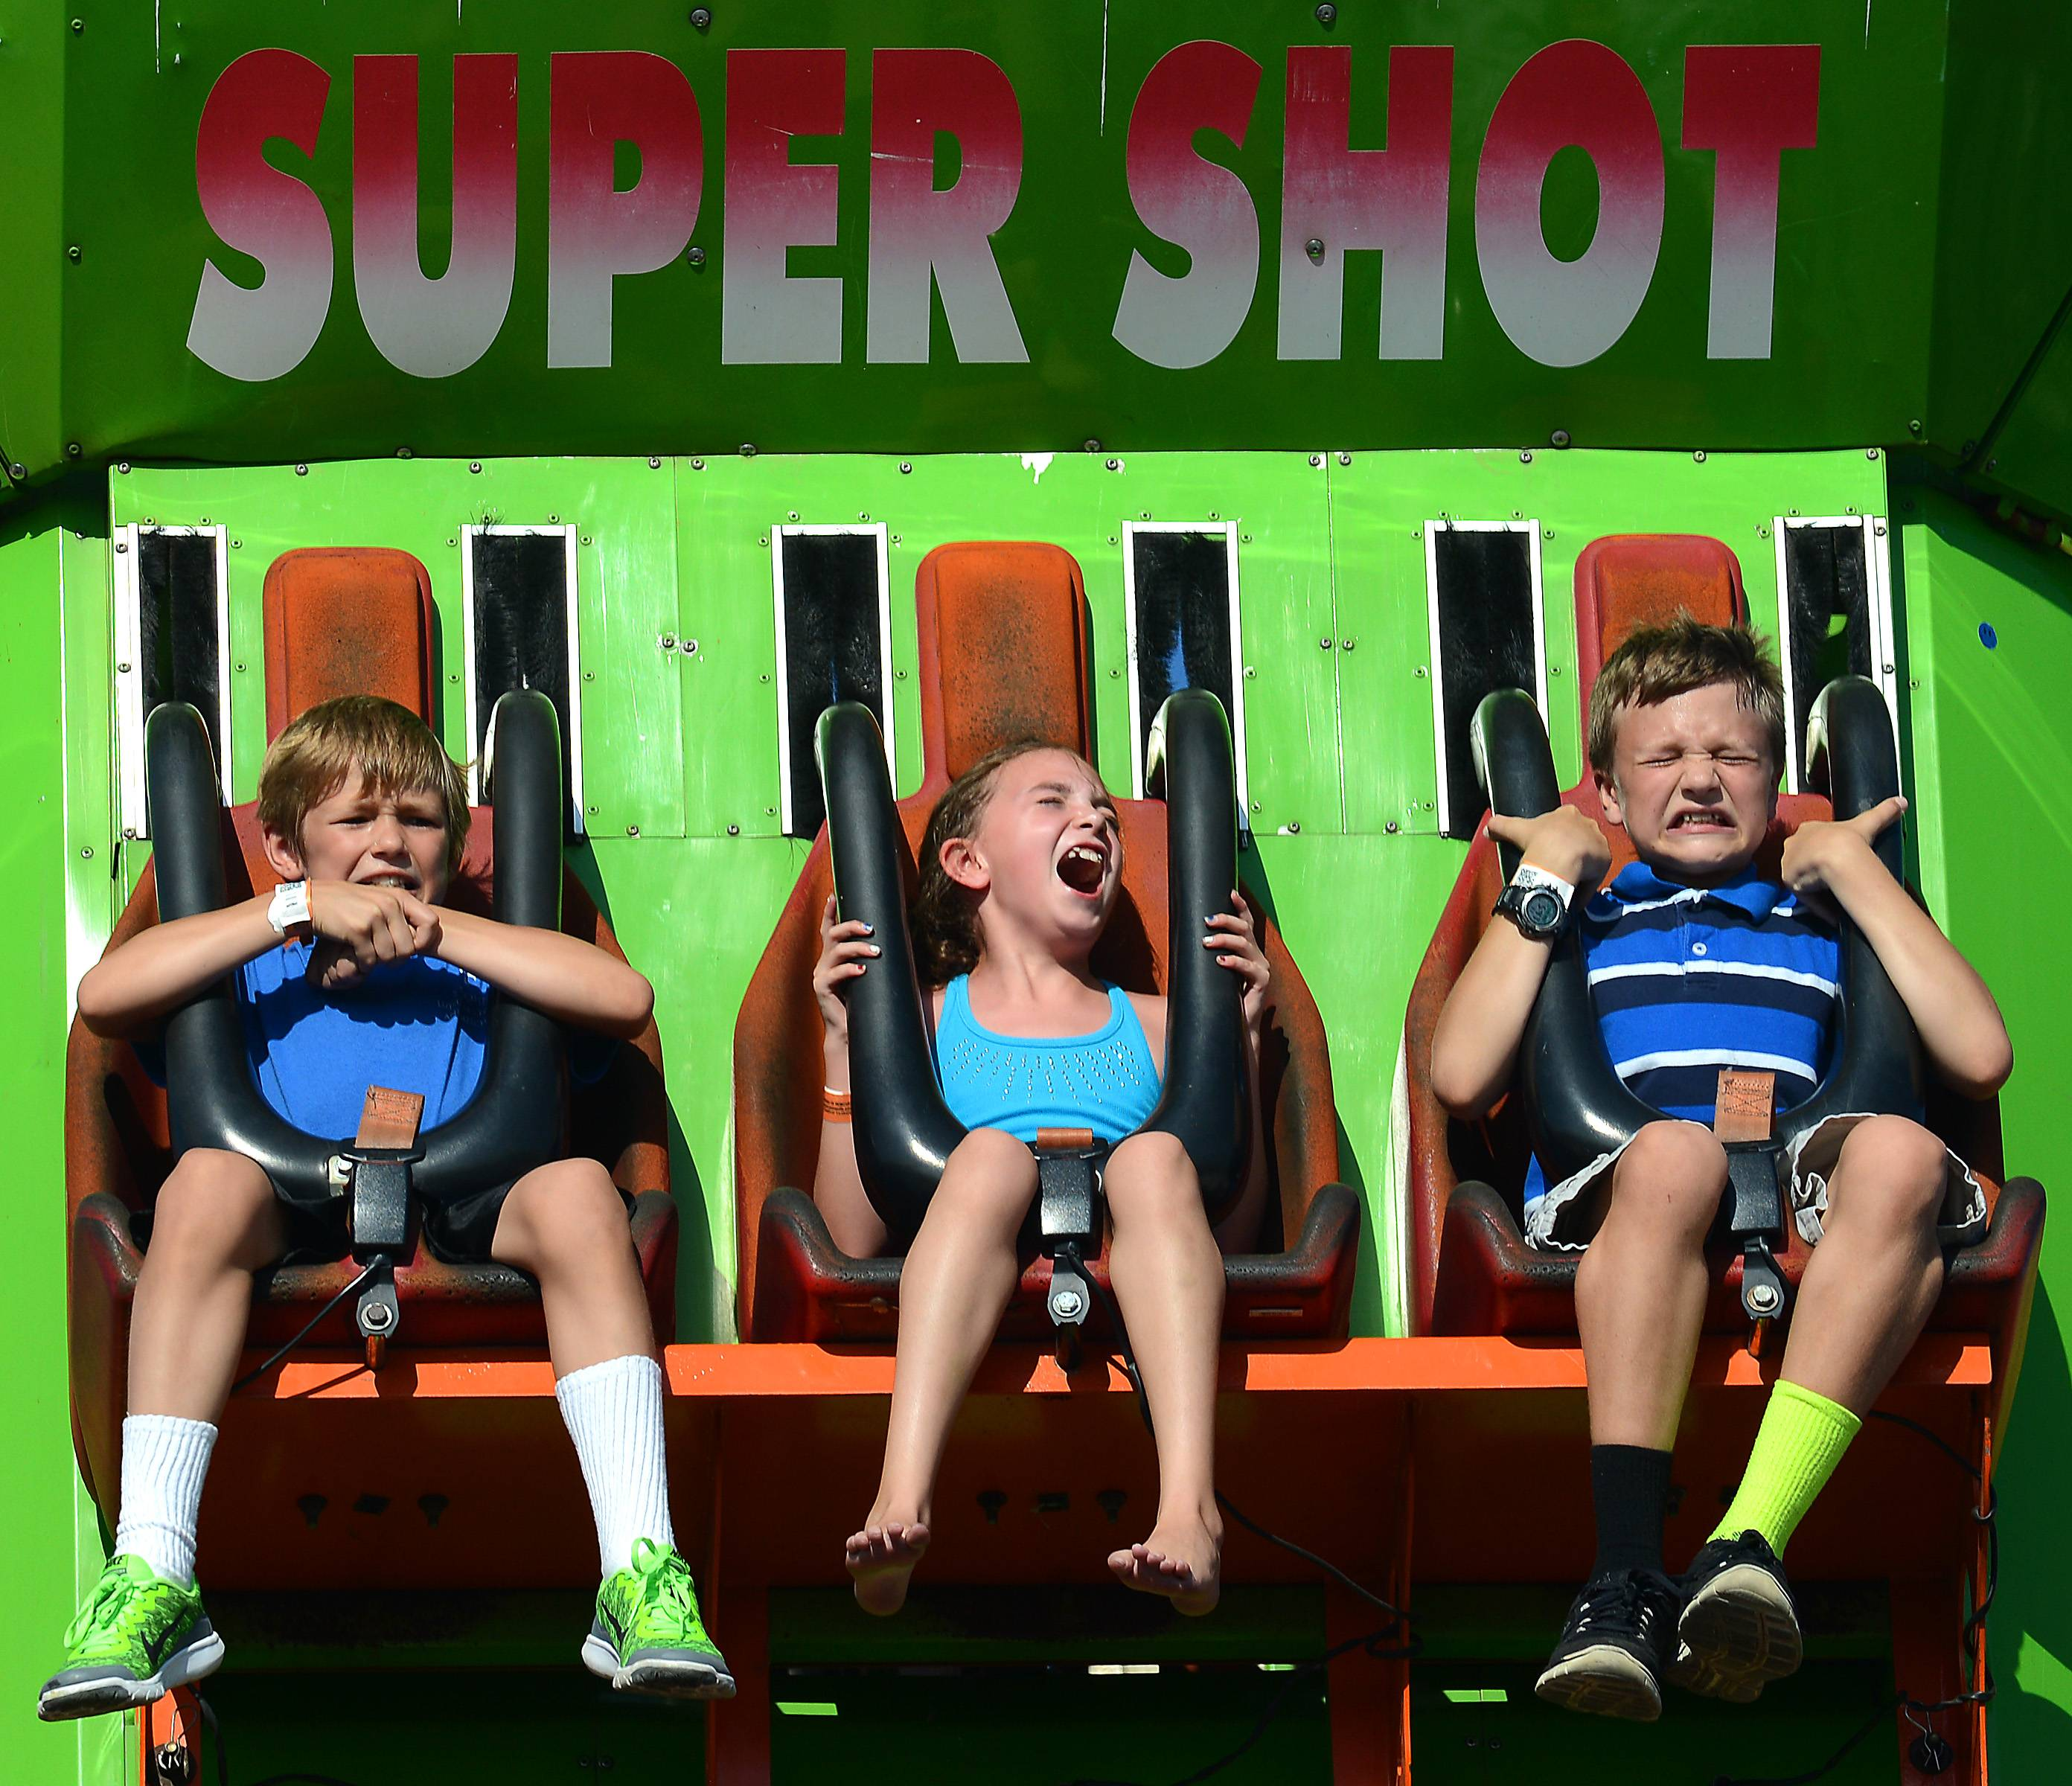 It was all tight grips and screams on the Super Shot for Nolan Scheel, 11, of Batavia, left, Brianna Siercks, 9, of St. Charles, center, and Ben Feuerborn, 12, of Batavia during opening day of the Kane County Fair in St. Charles Wednesday.